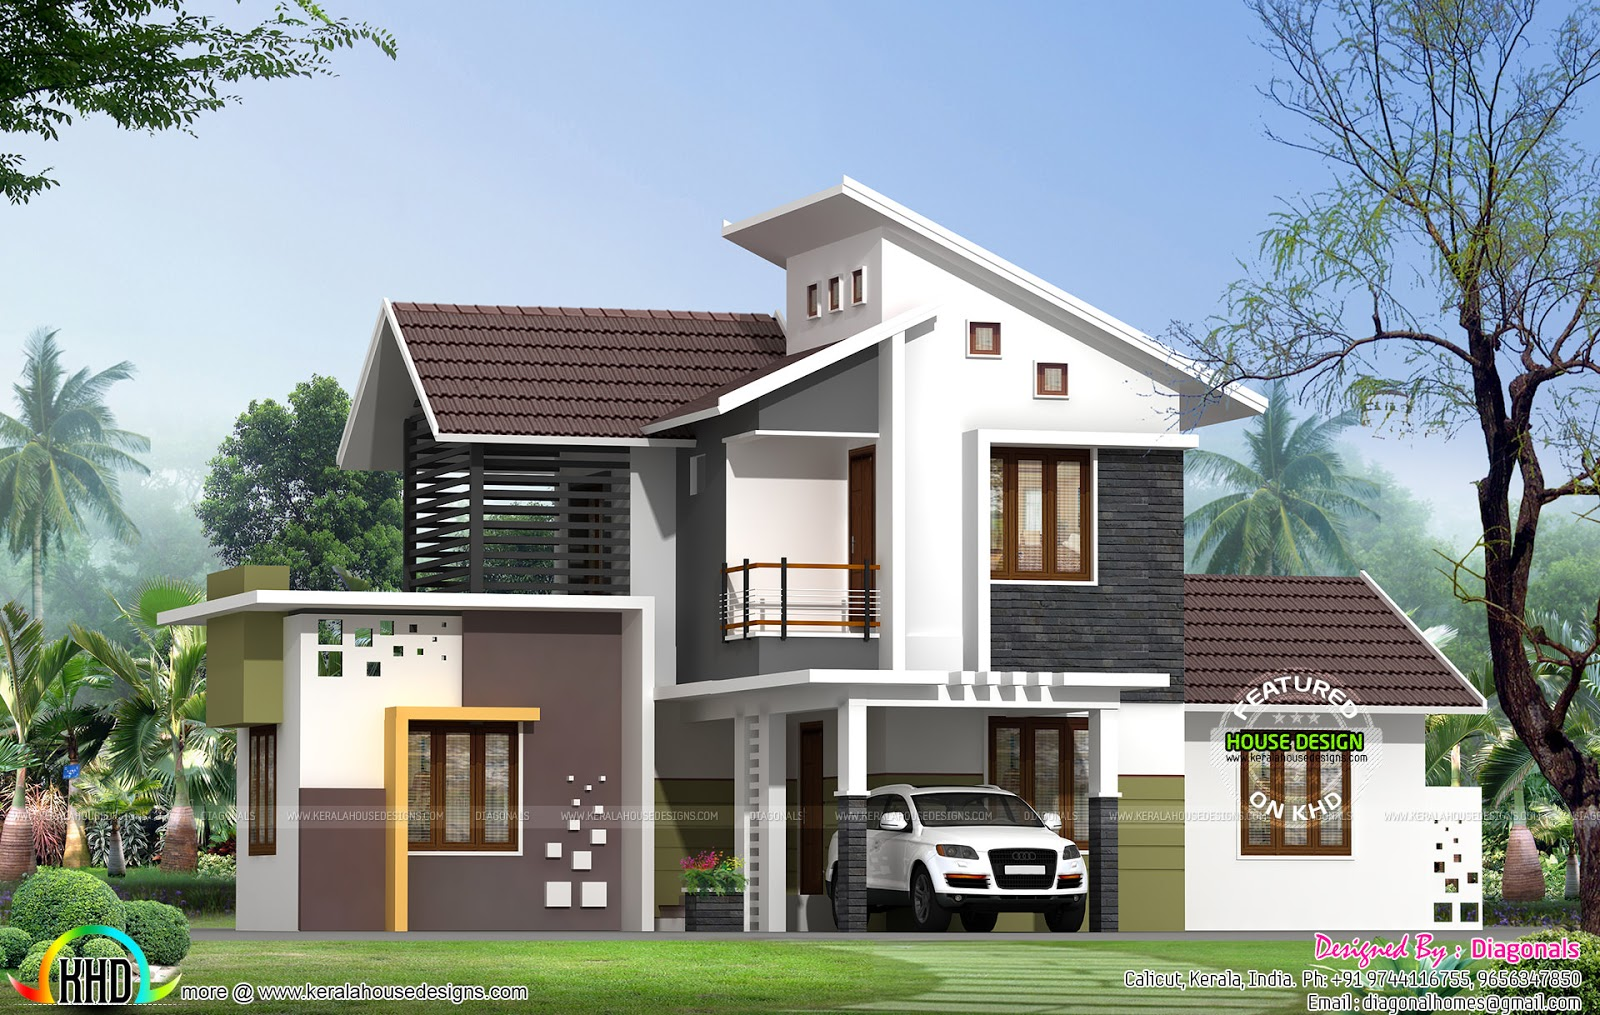 Simple model modern home kerala home design and floor plans for Minimalist house kerala